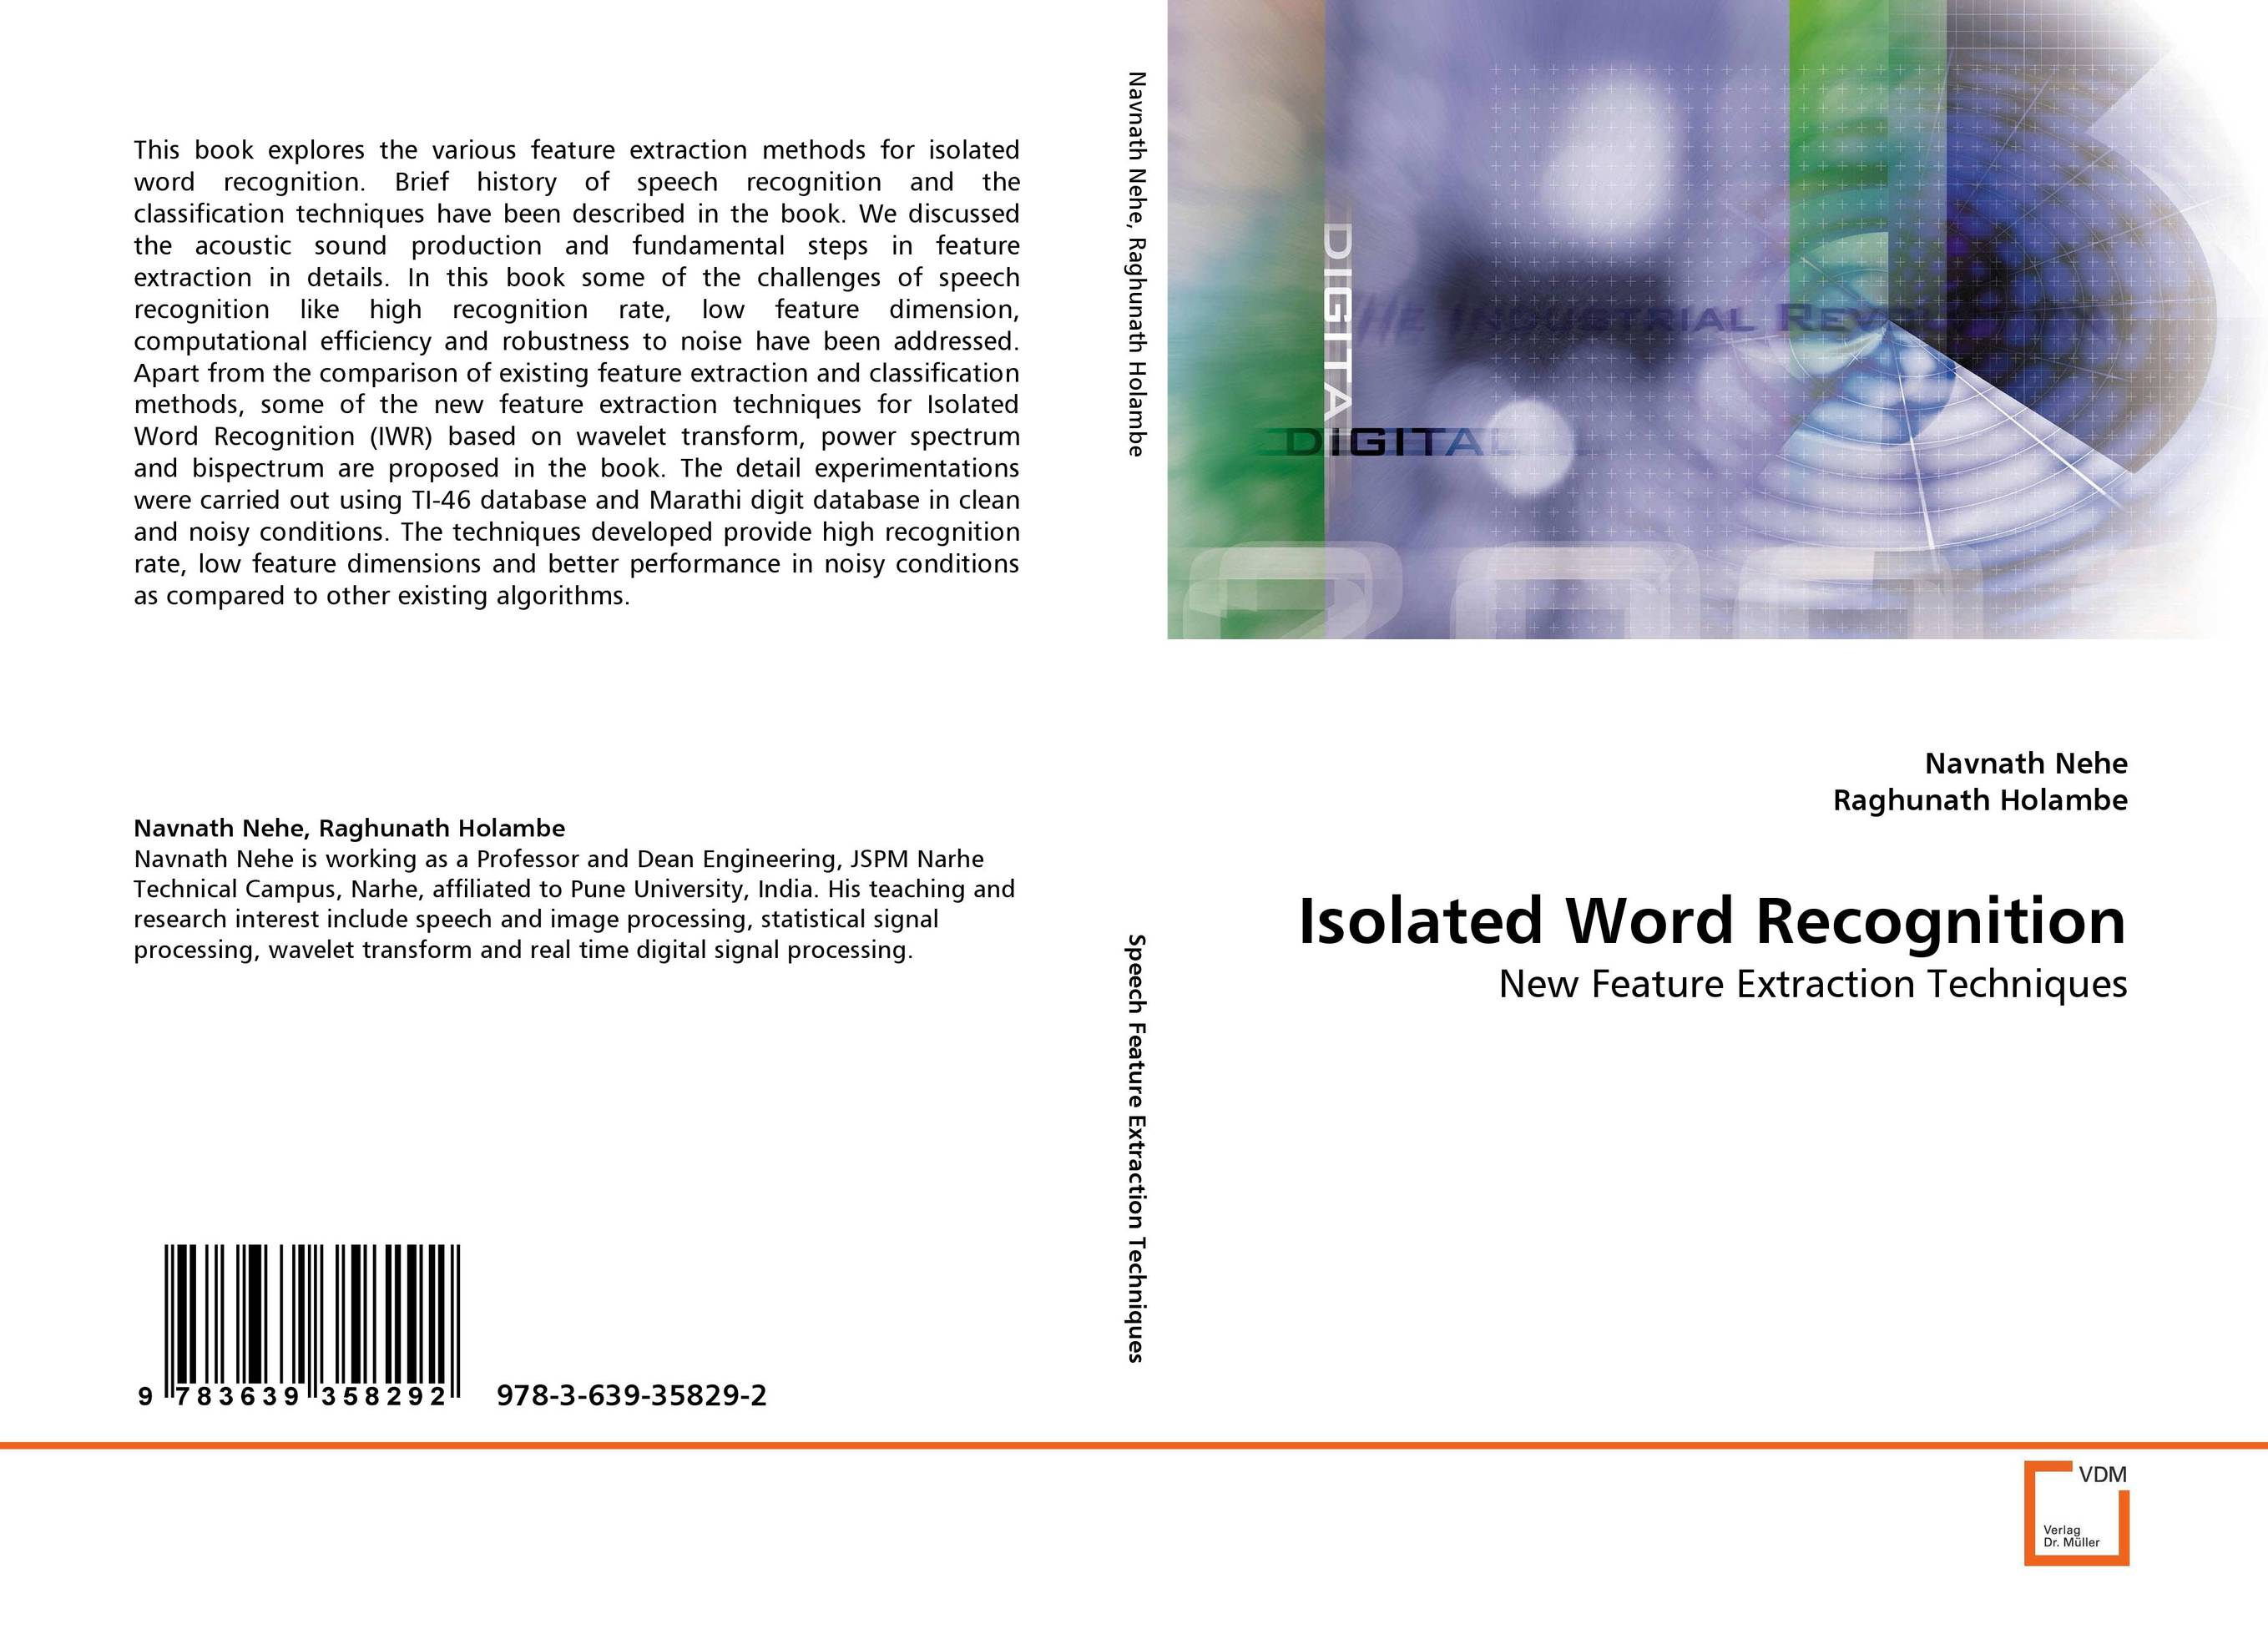 Isolated Word Recognition